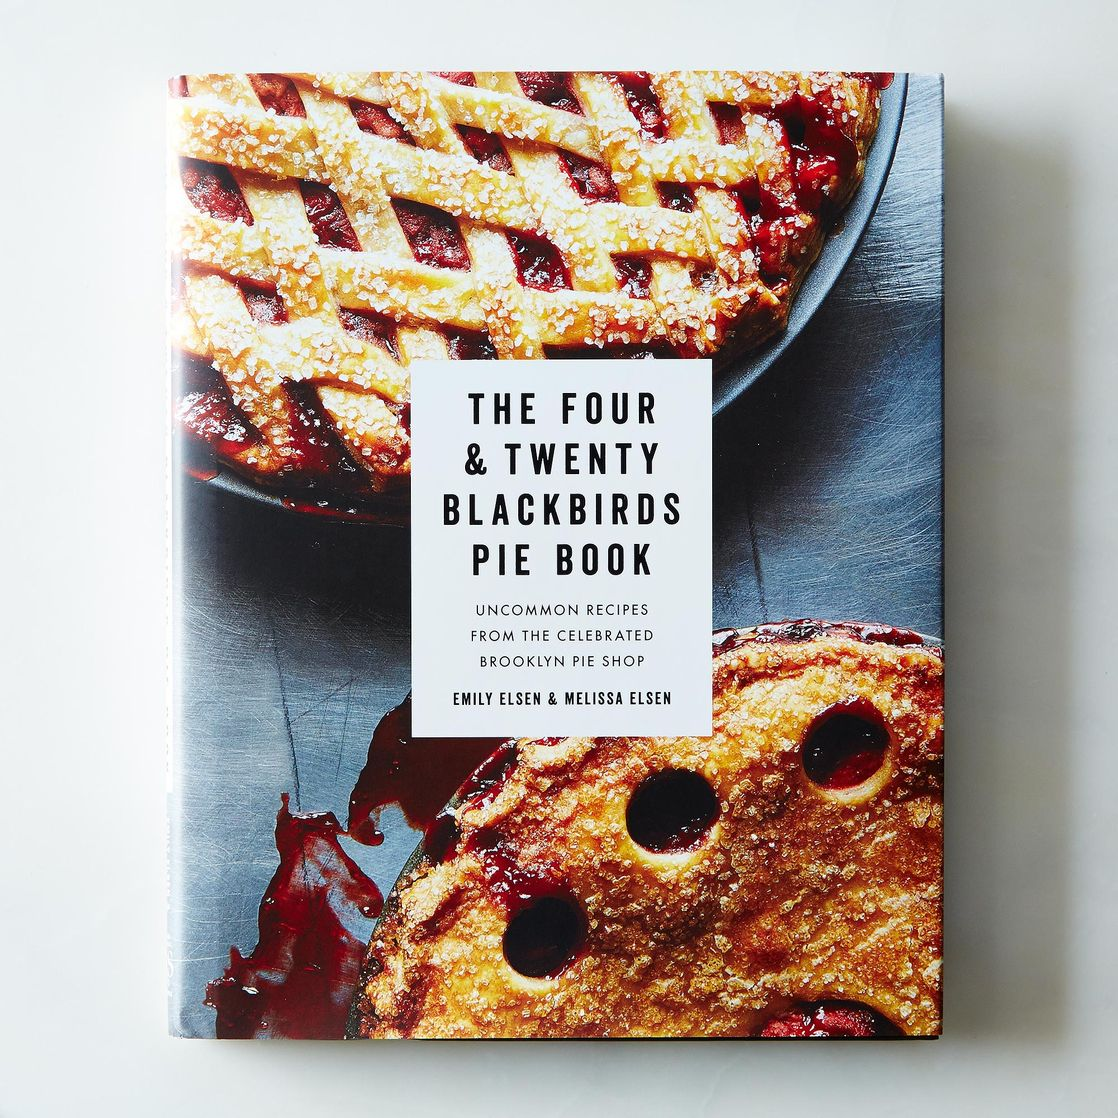 e3164390-cbc6-4990-ba92-6417927a0f6a--2014-0616_hachette-book-group_four-twenty-blackbirds-pie-book-006.jpg